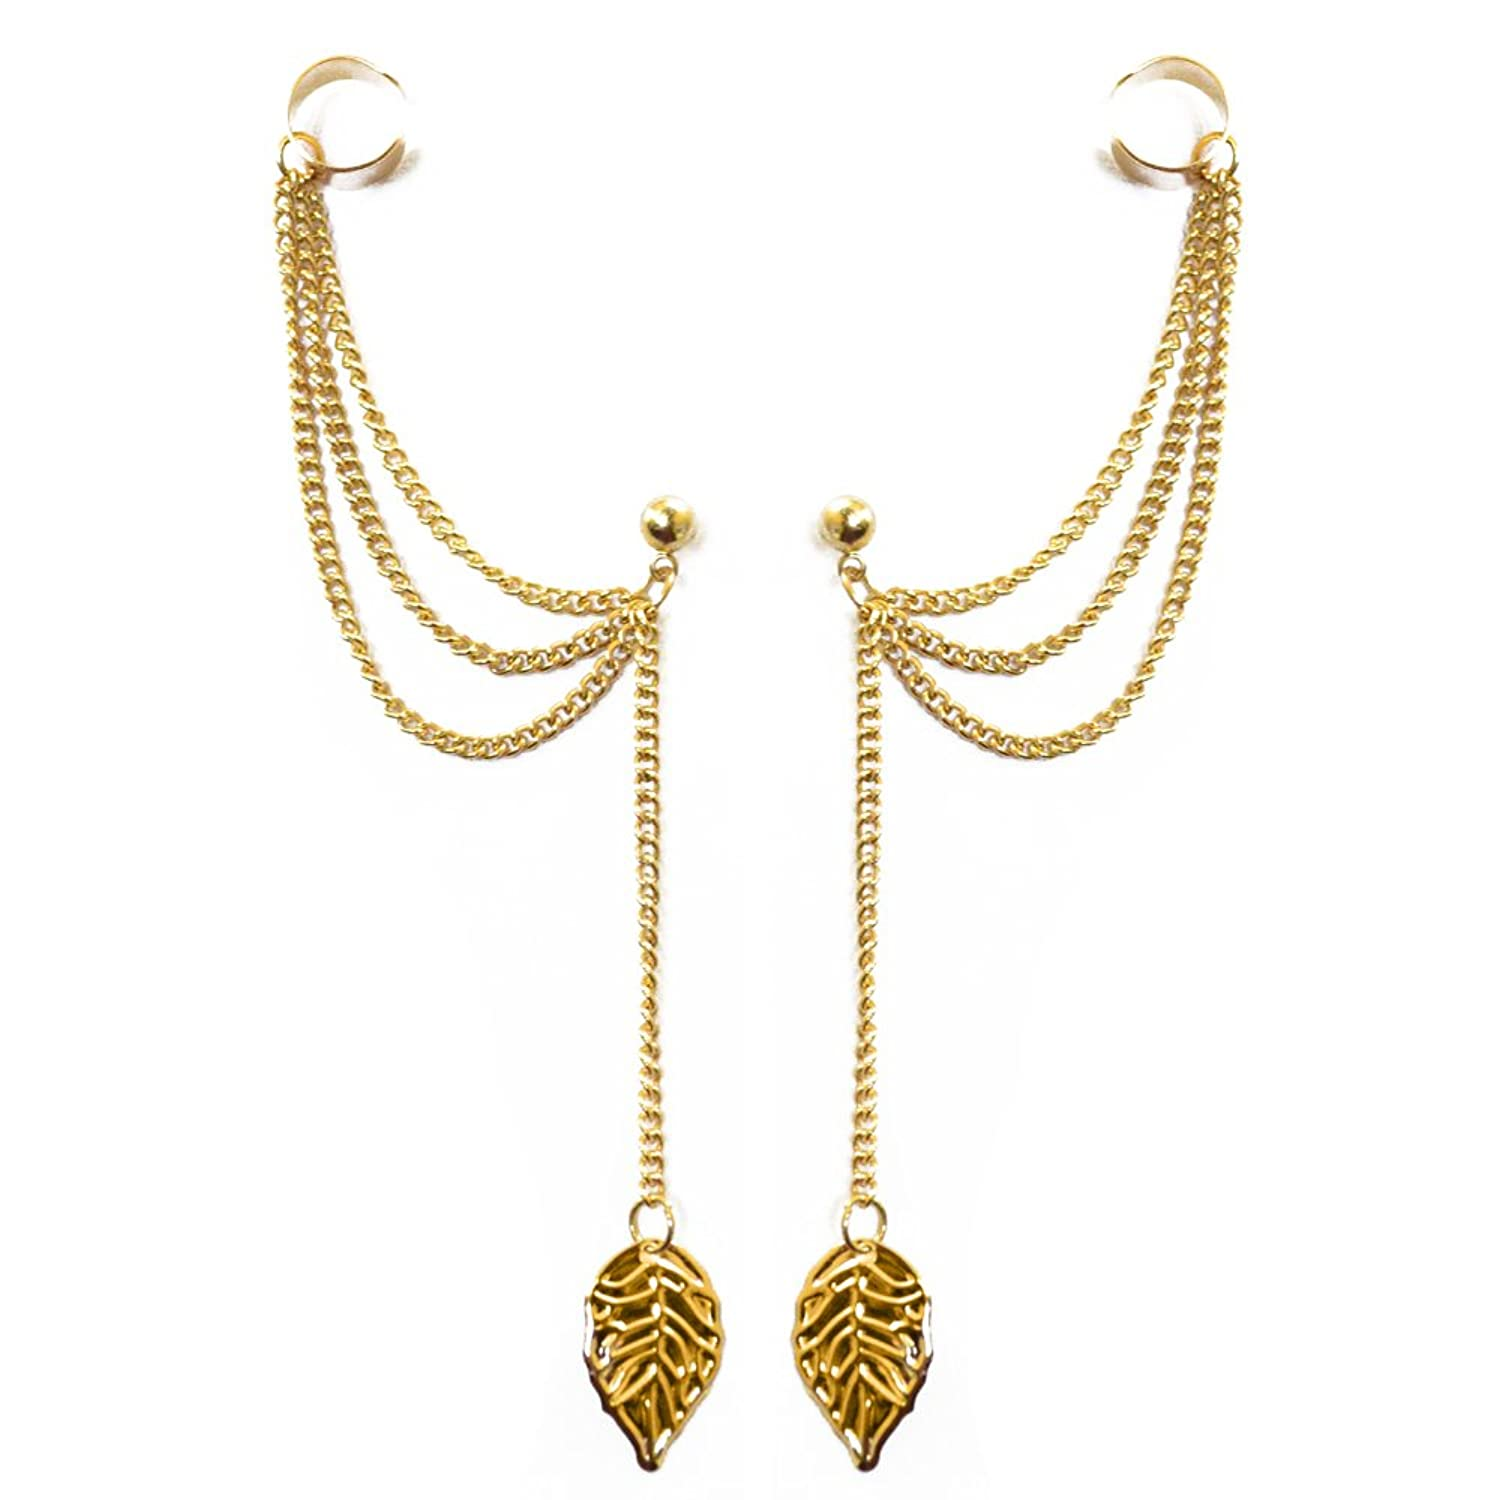 Buy Via Mazzini Golden Linings Chain Ear Cuff Earrings Set Online ...